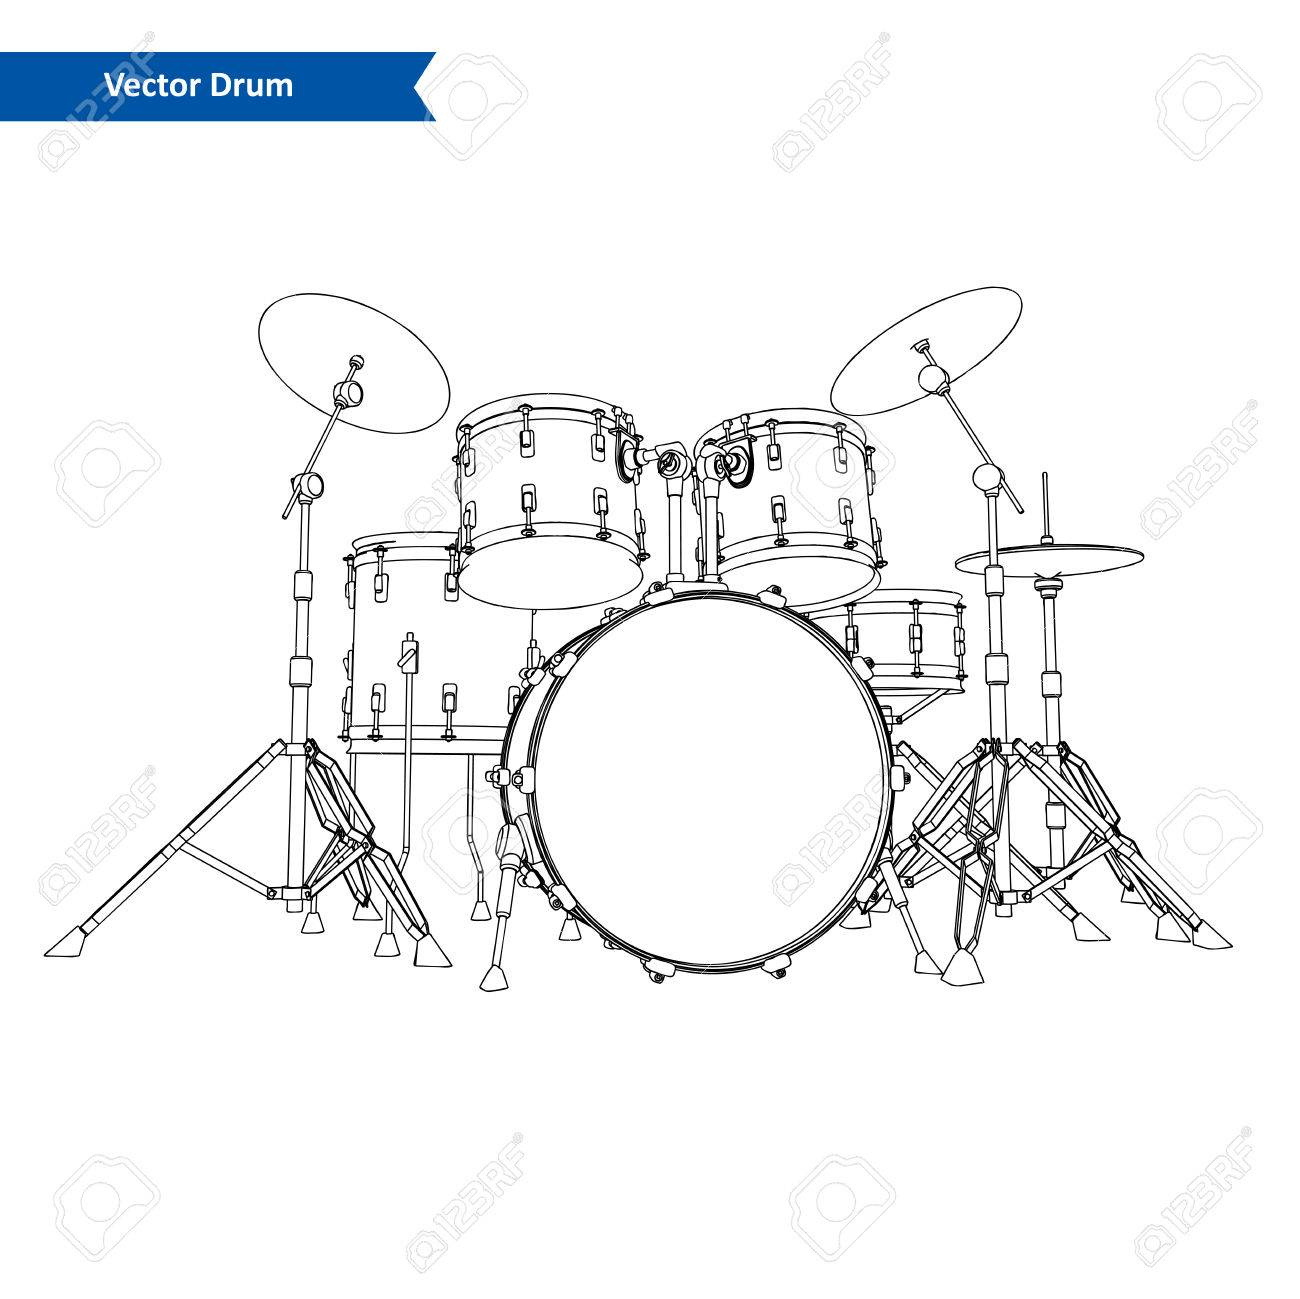 hight resolution of drum kit vector stock vector 48006613